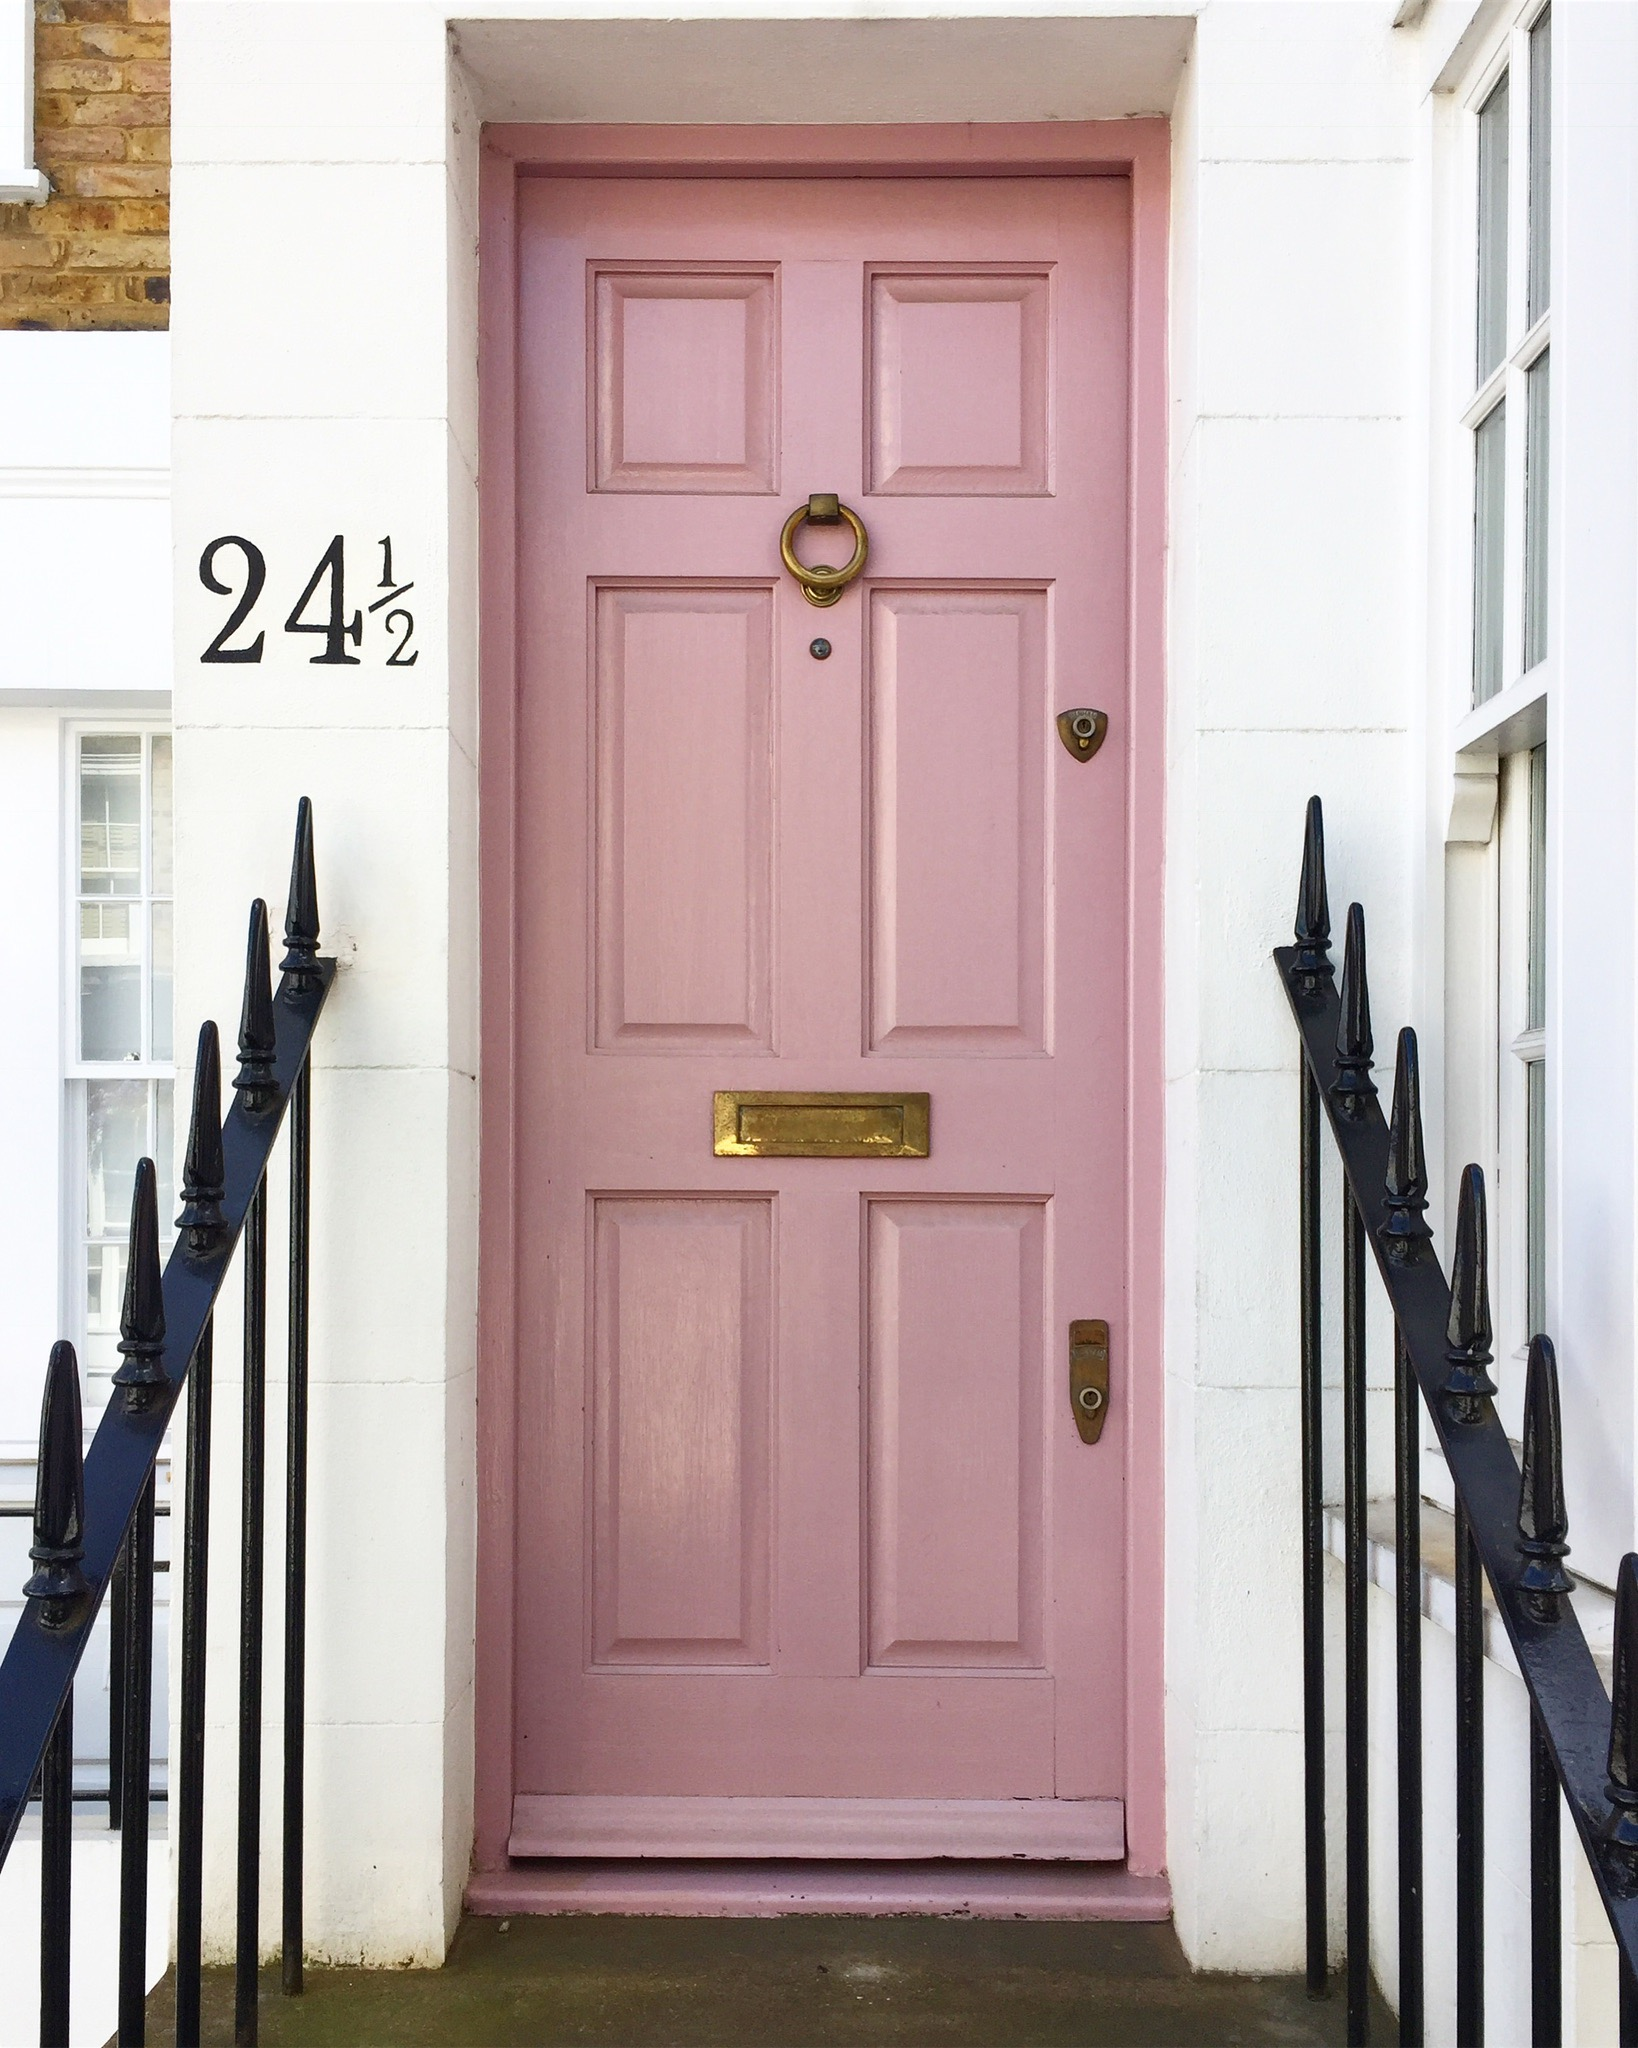 The top 8 pink doors of London – London is Pink